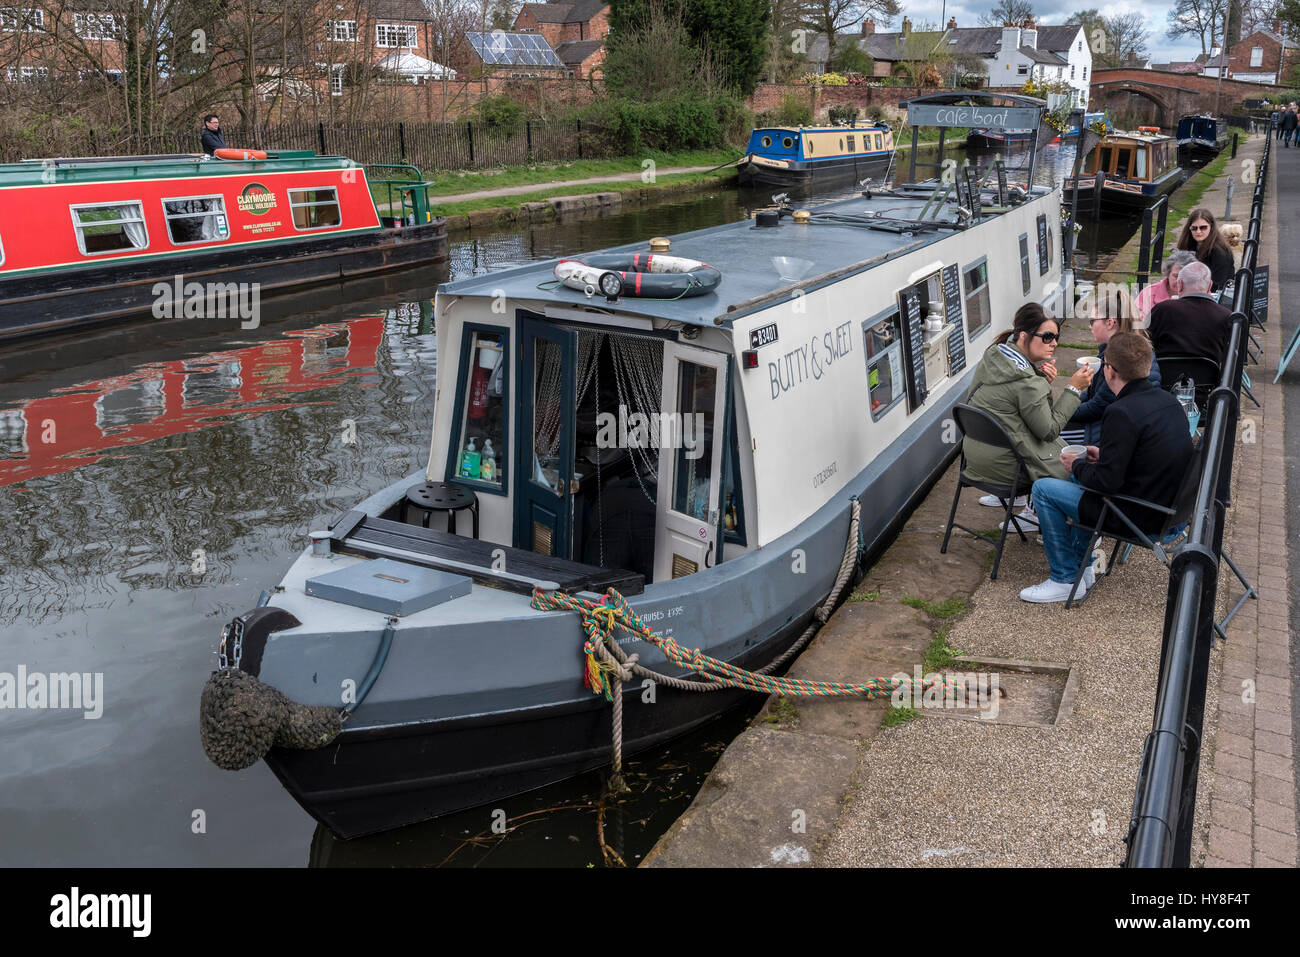 Lymm cafe boat on the Bridgewater canal. - Stock Image